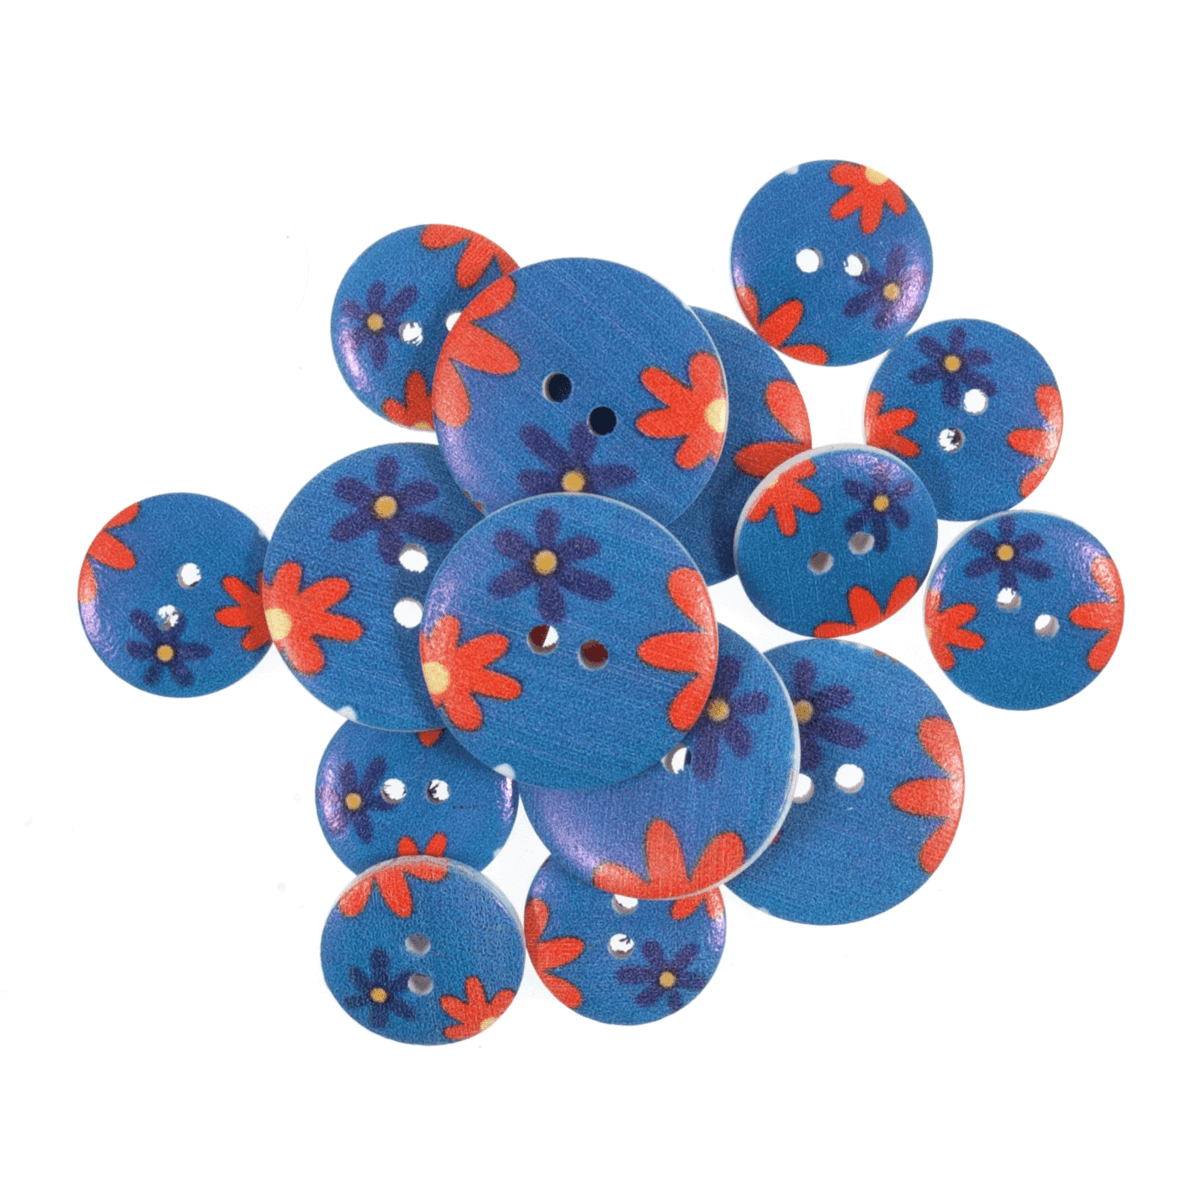 15 x Assorted Daisy Delight Orange Wooden Craft Buttons 18mm - 25mm